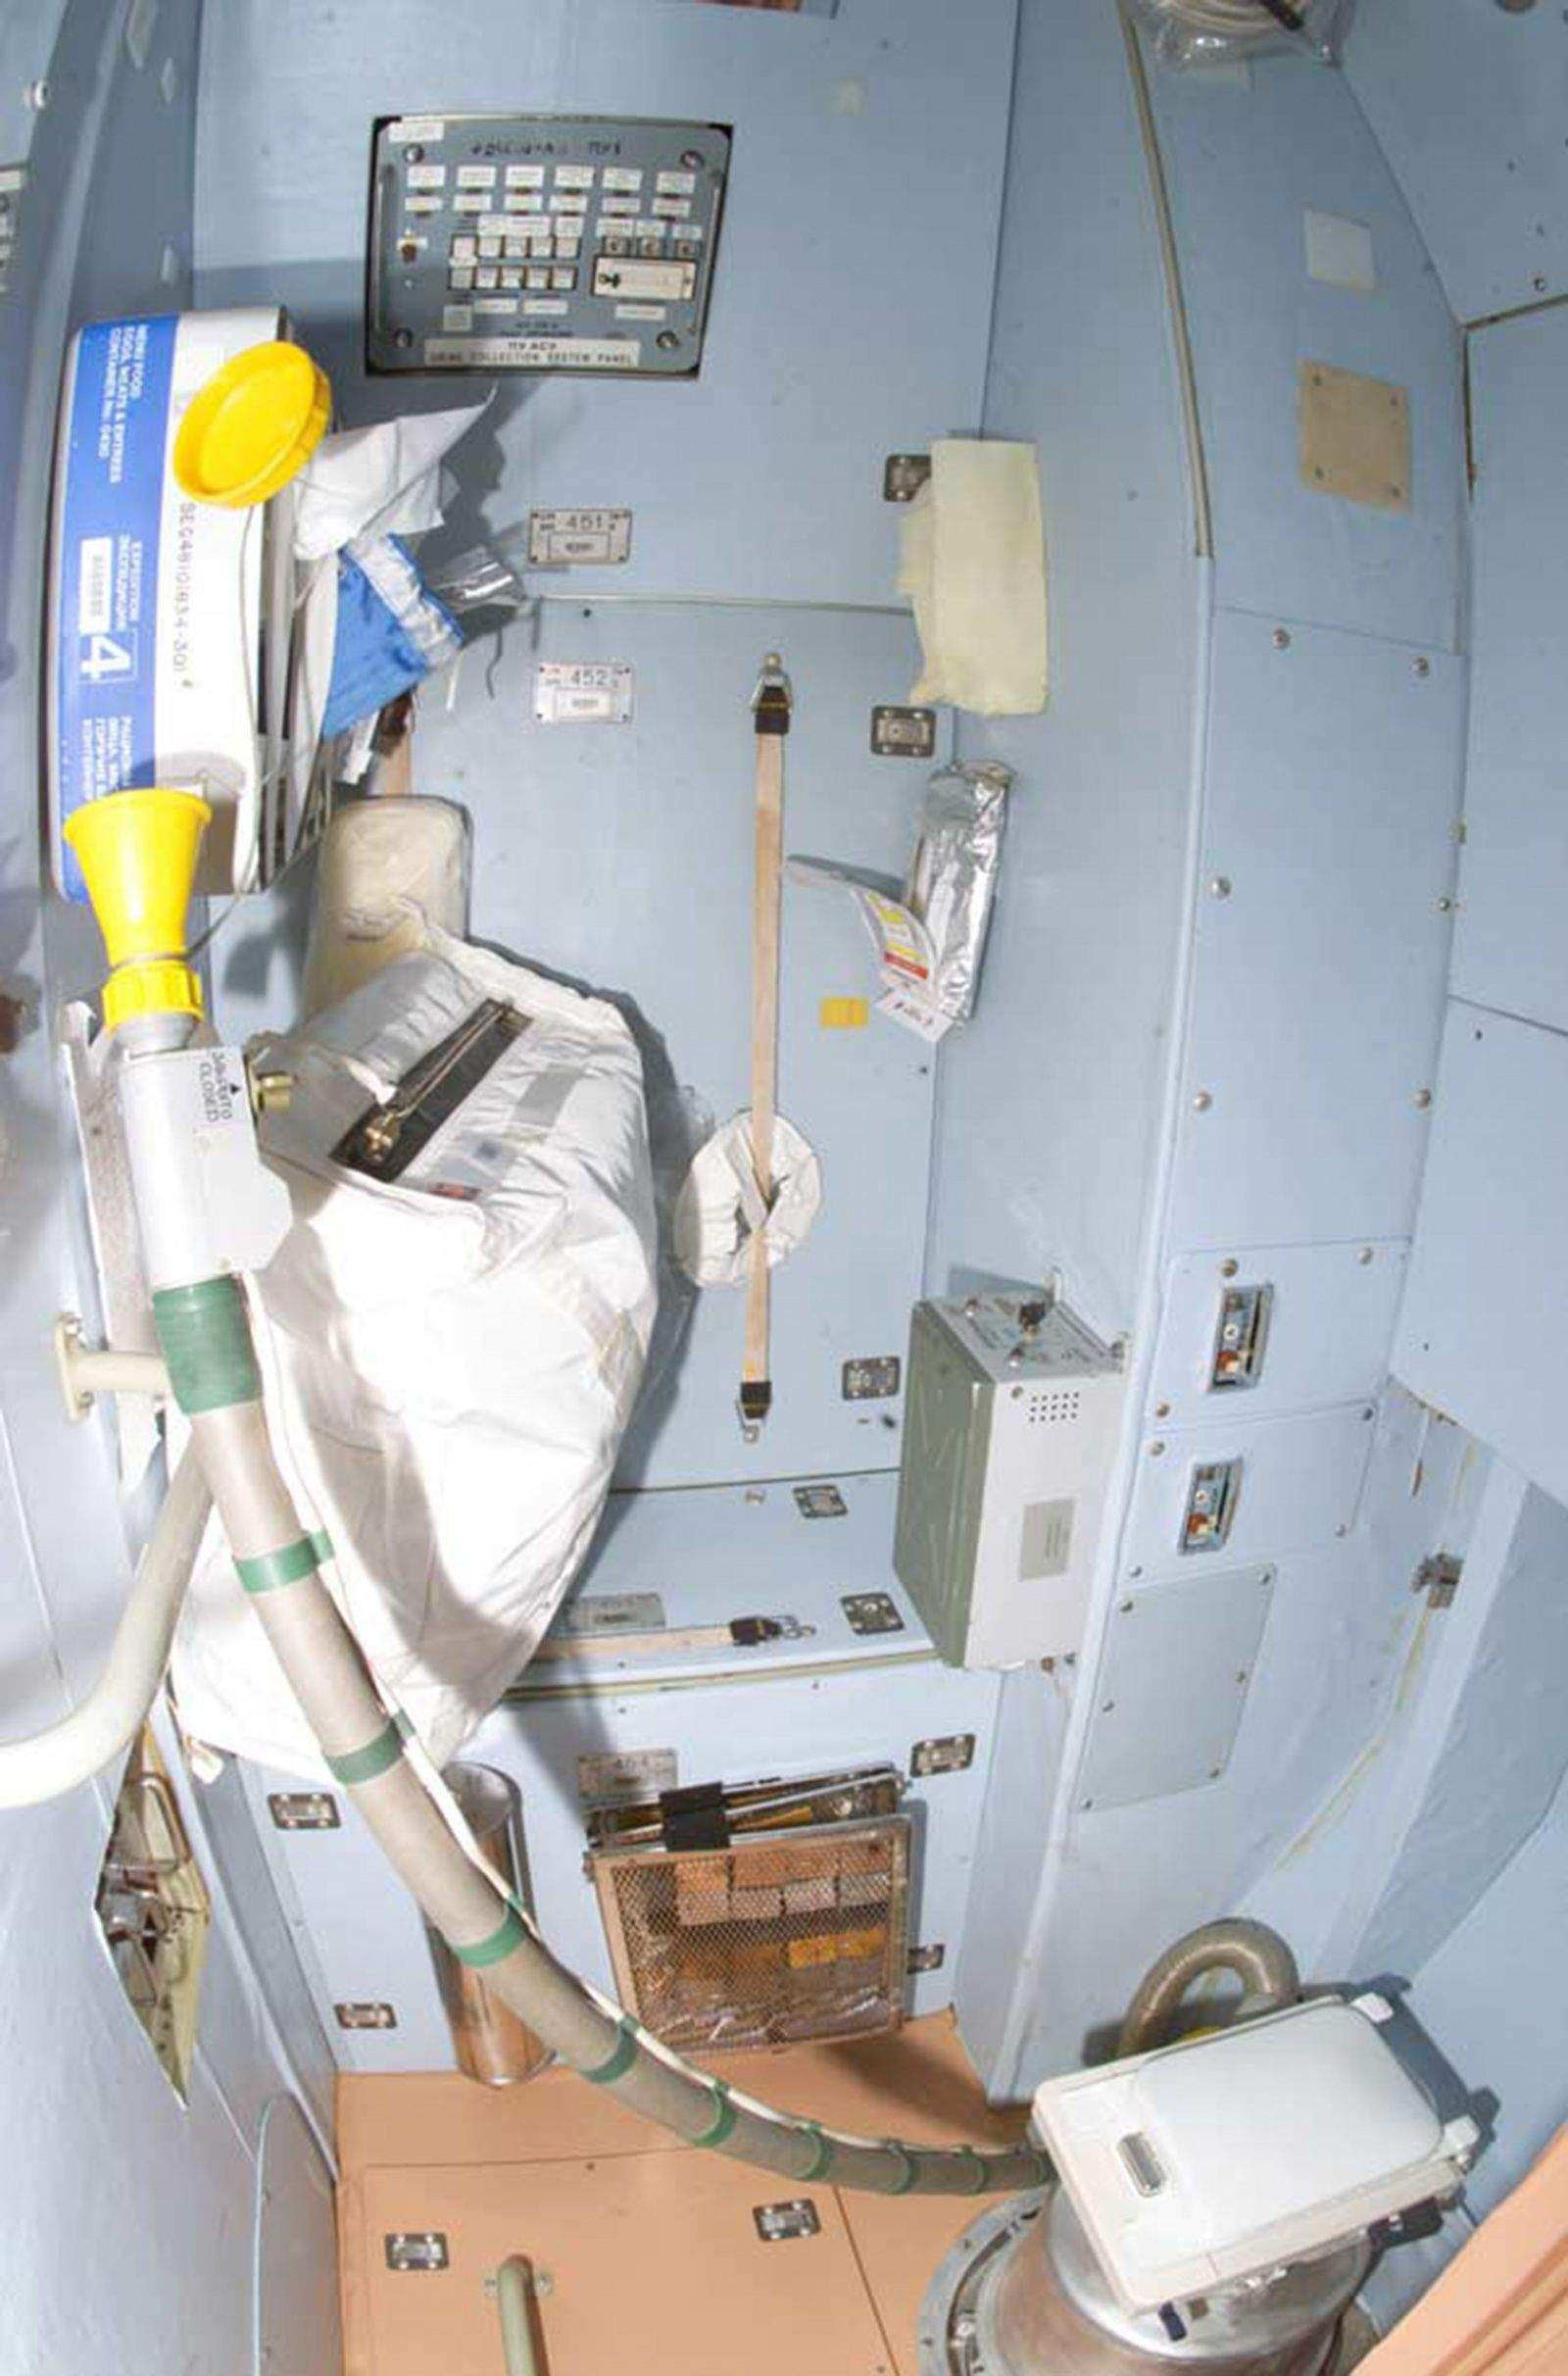 How astronauts use the bathroom - This Picture Shows The Bathroom On